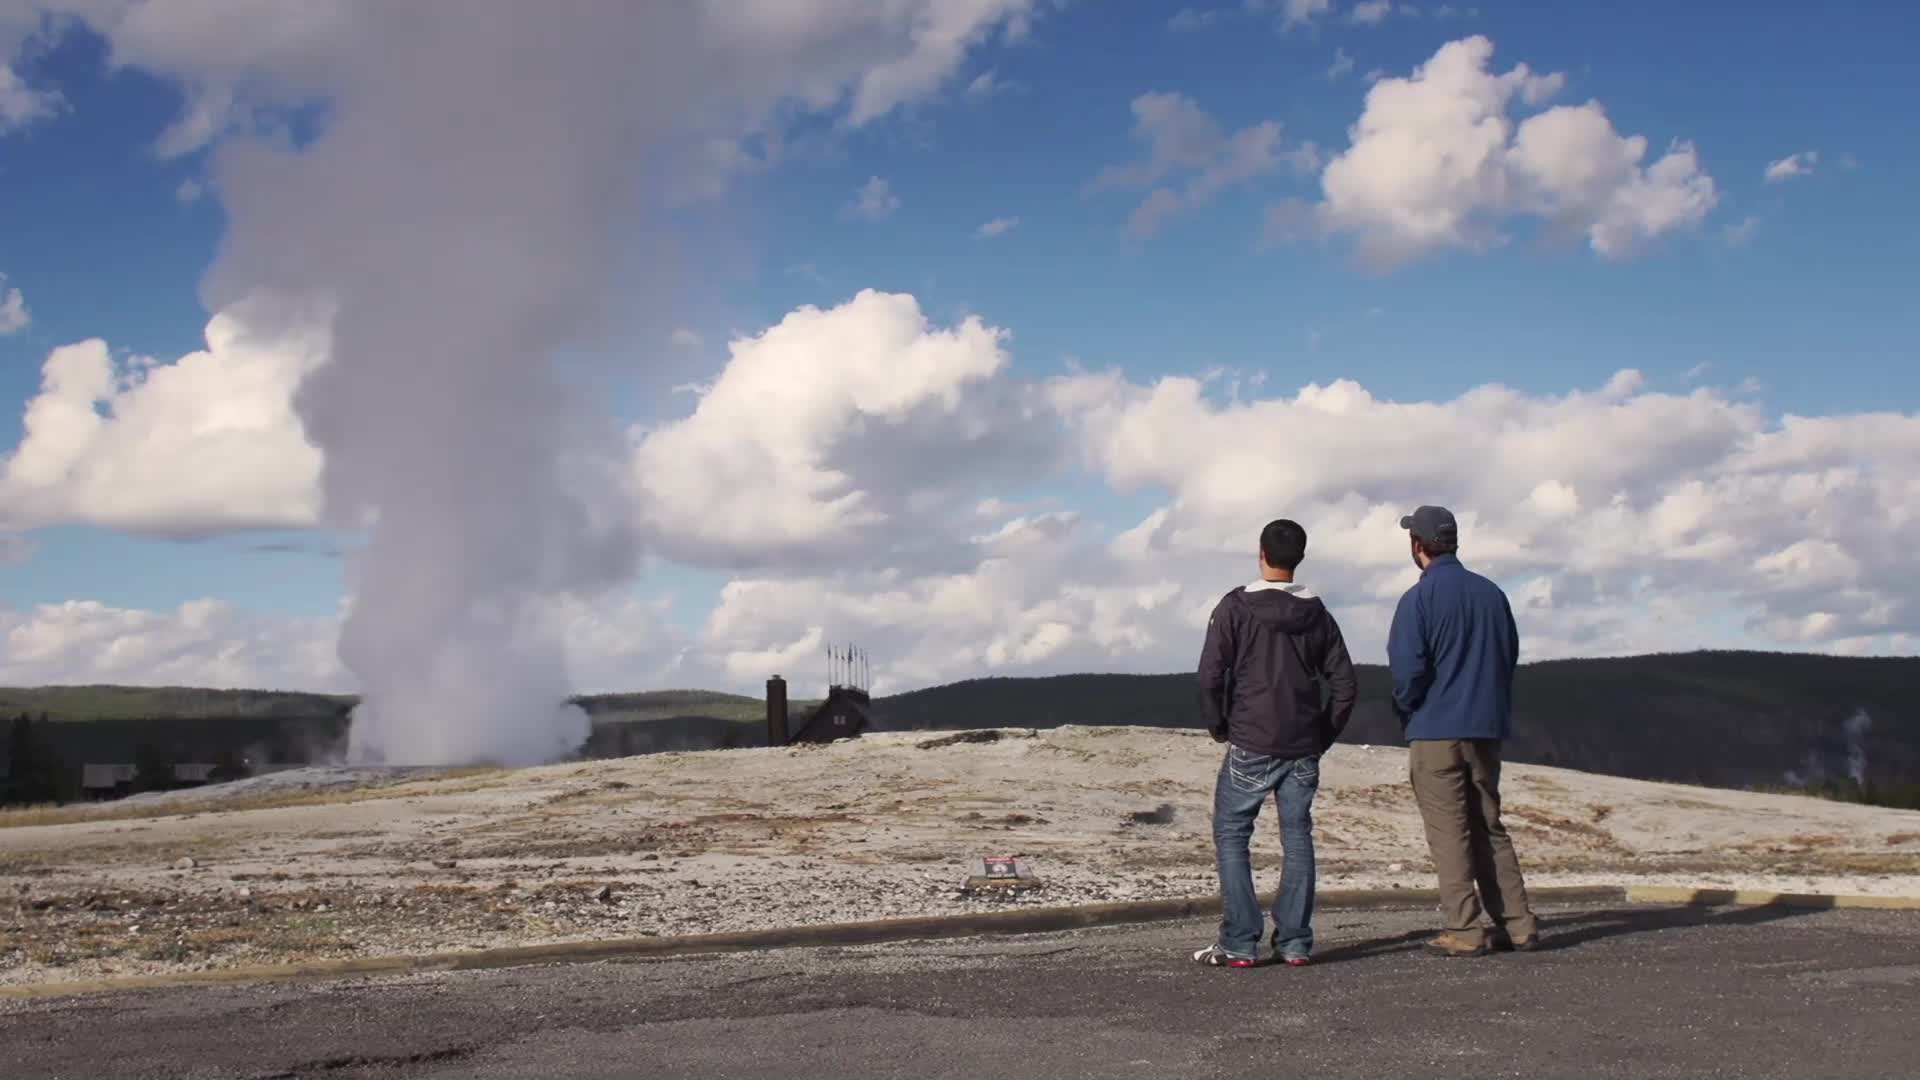 Yellowstone's Famous Old Faithful Geyser Offers Visitors An Ecological New Pathway